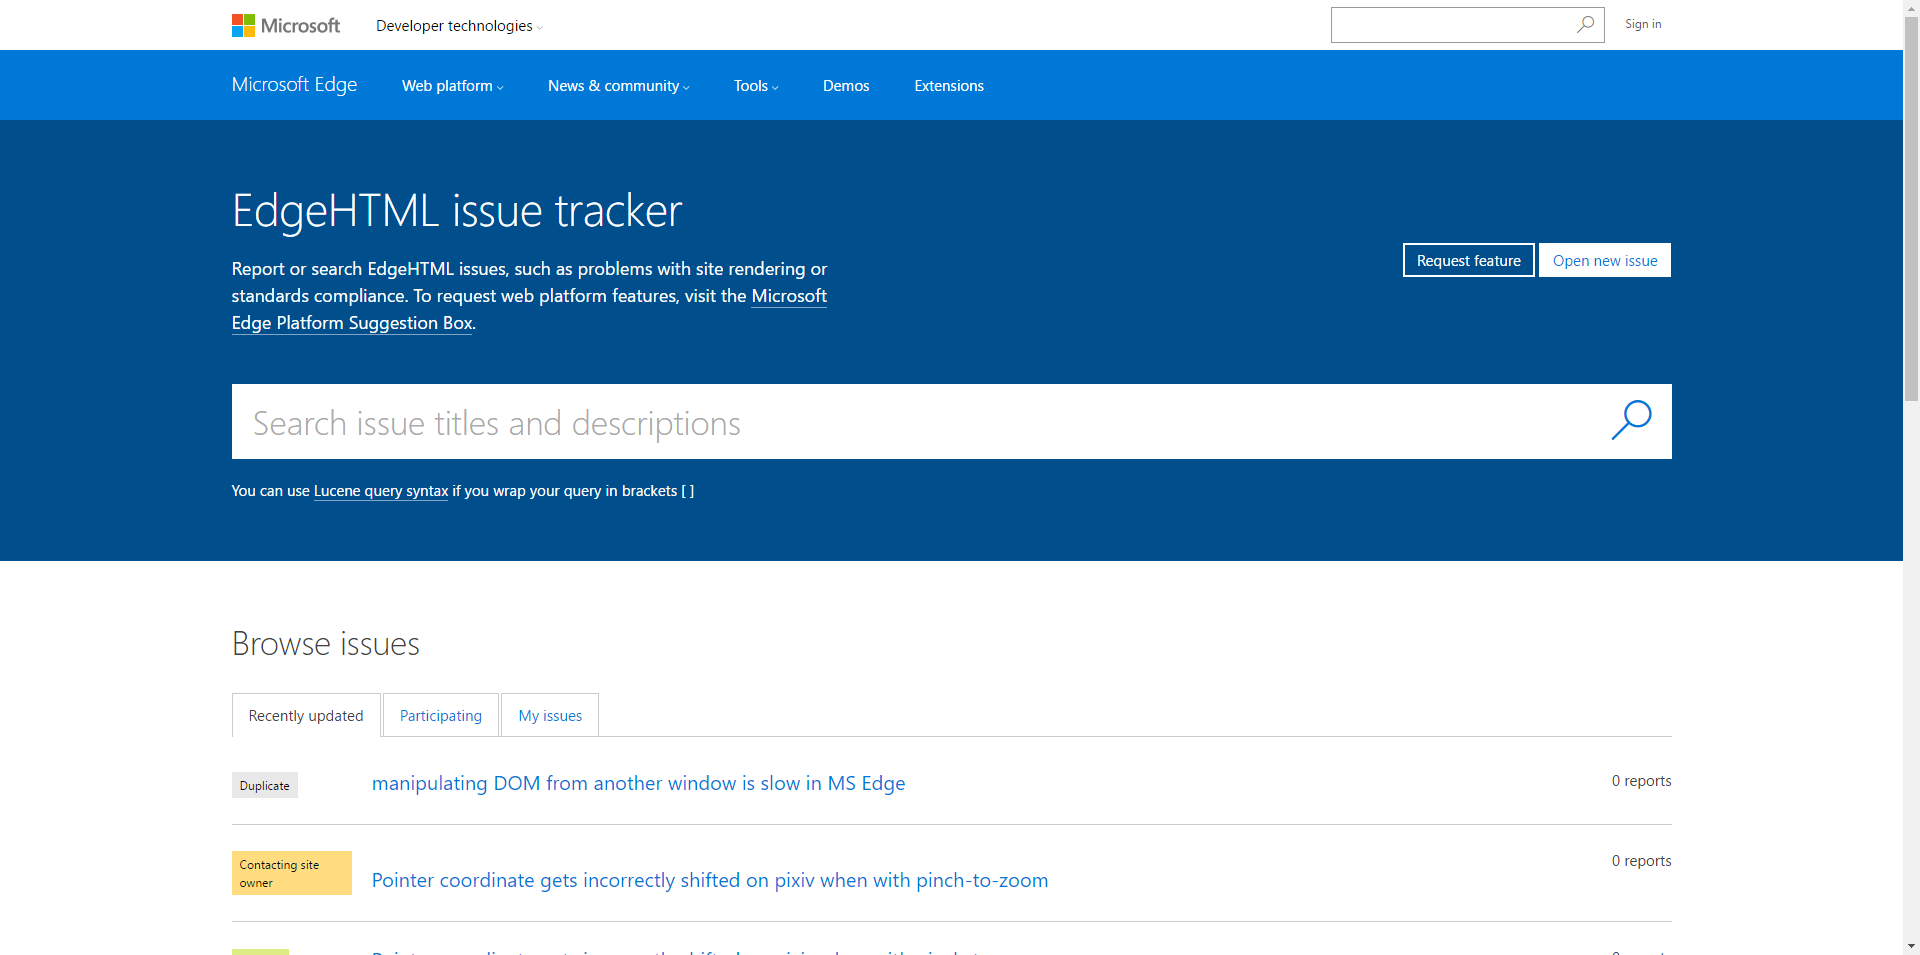 EdgeHTML_issue_tracker_-_Report_or_search_issues,_-1602